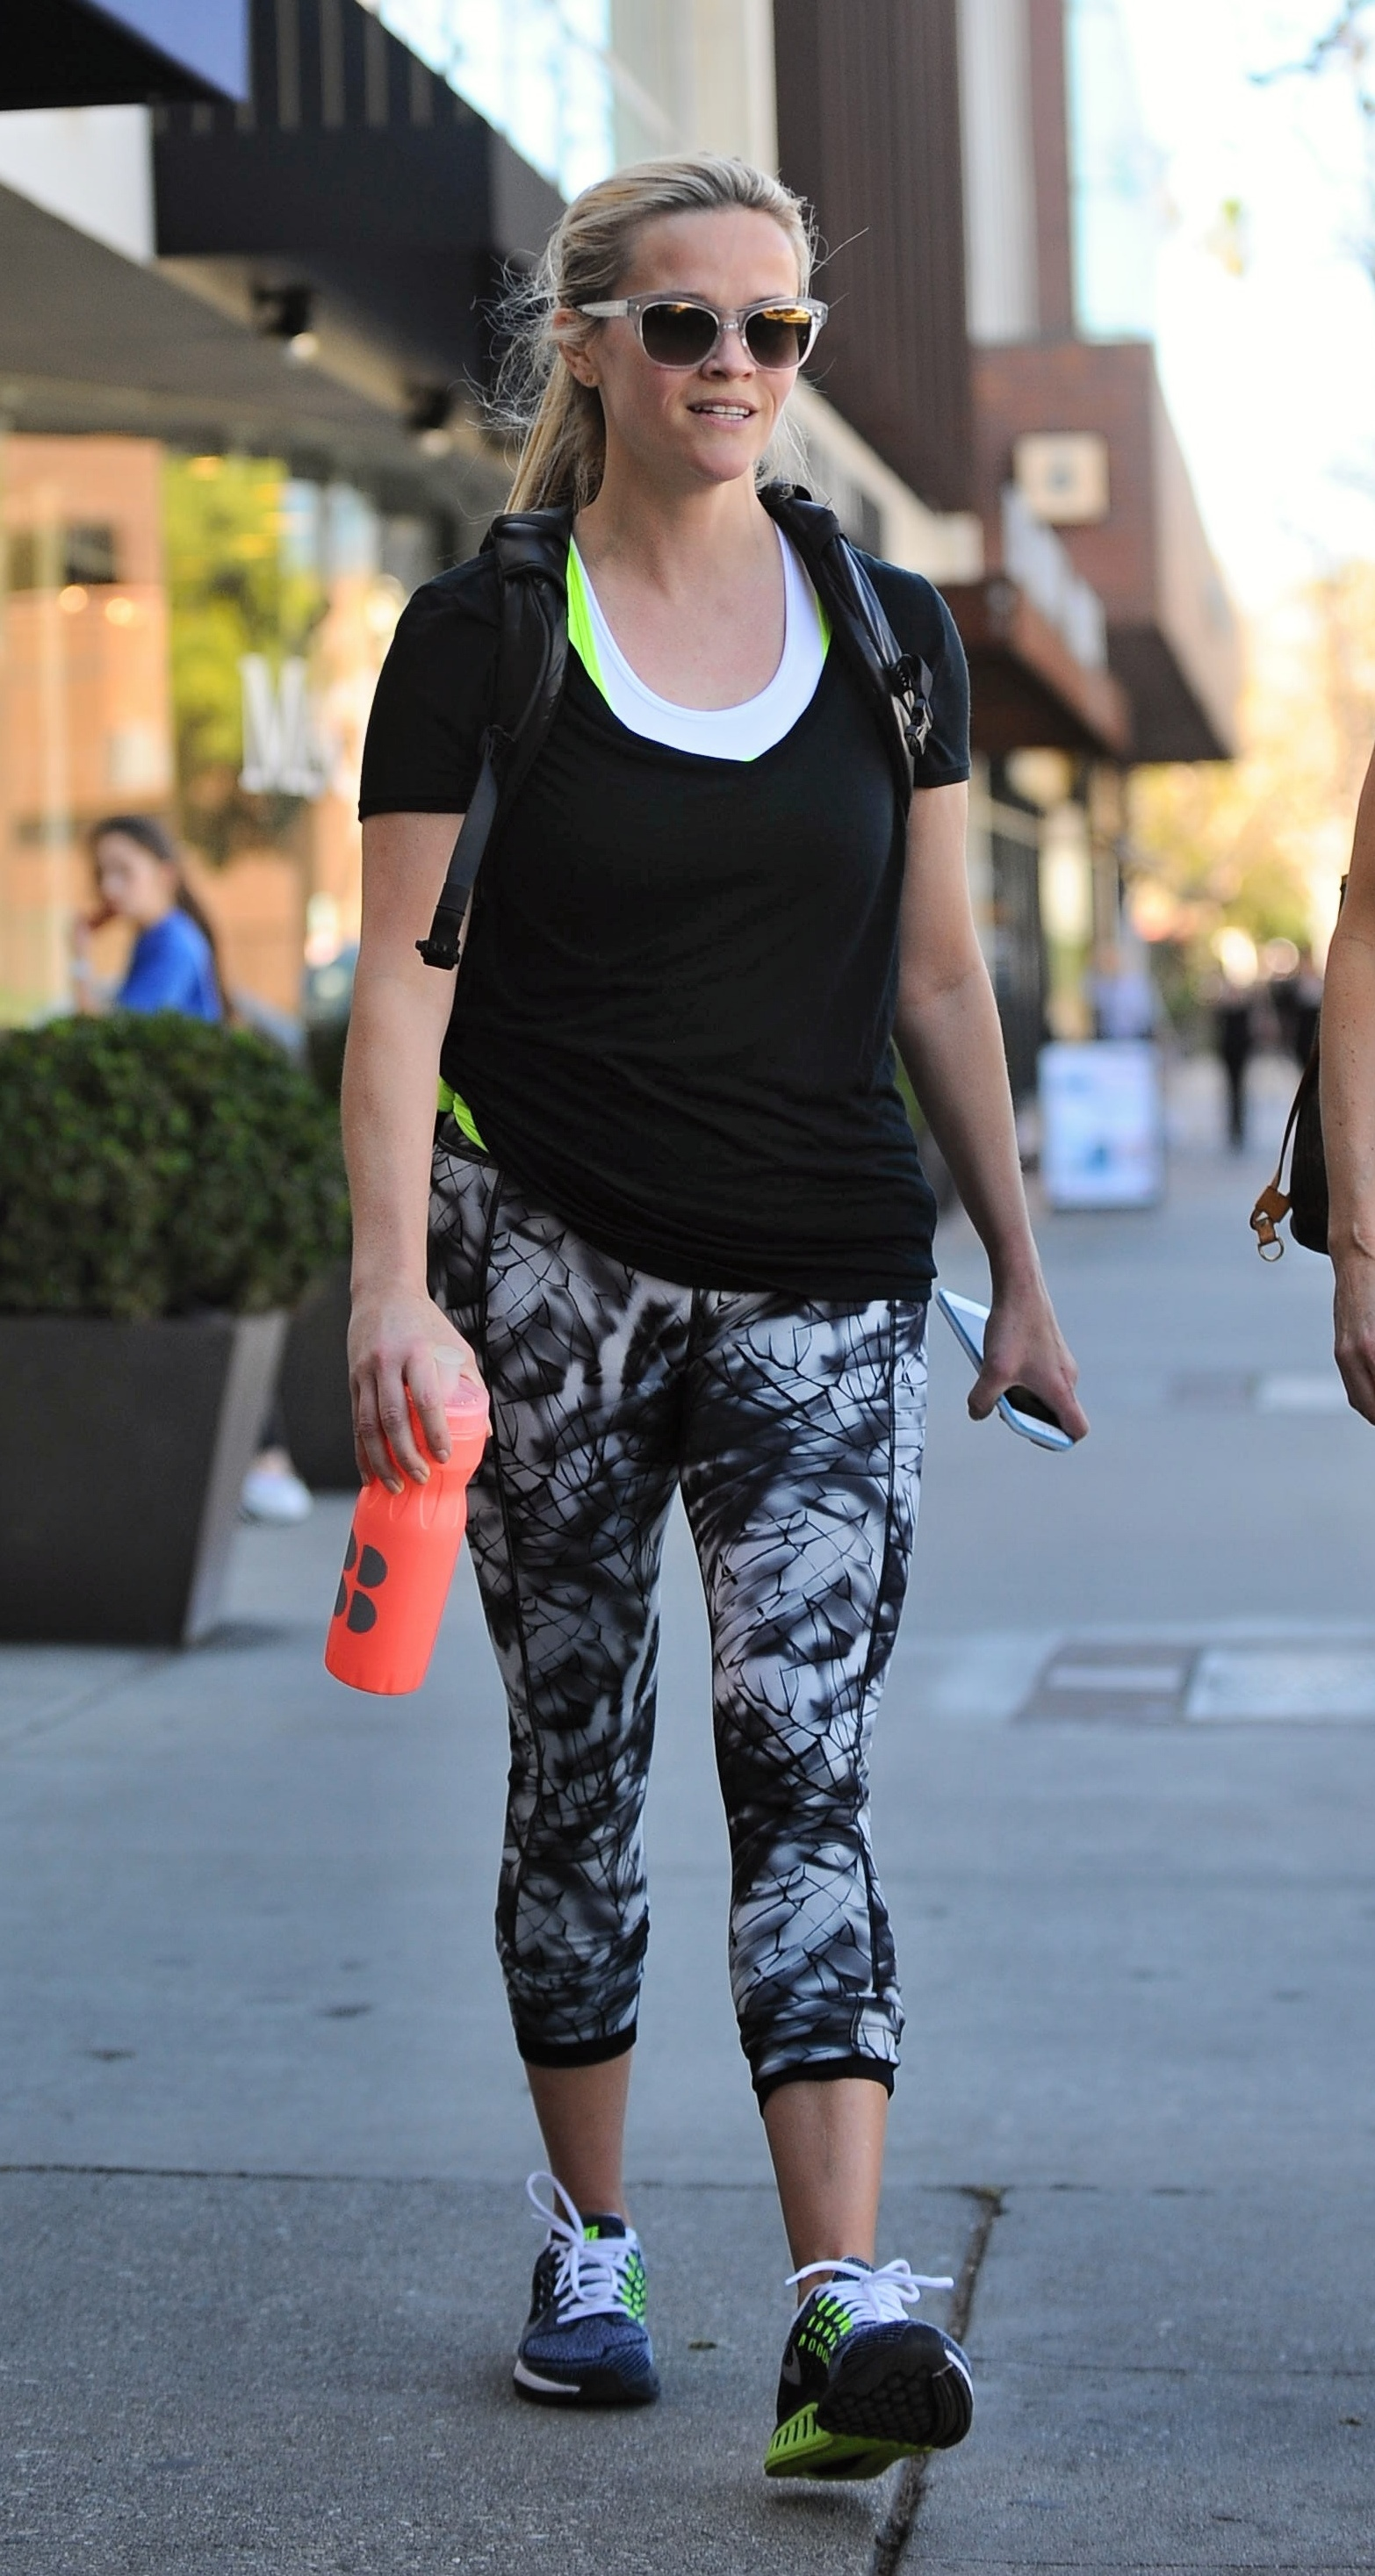 Reese Witherspoon leaving her yoga class                                    Featuring: Reese Witherspoon                  Where: Brentwood, California, United States                  When: 15 Feb 2016                  Credit: WENN.com